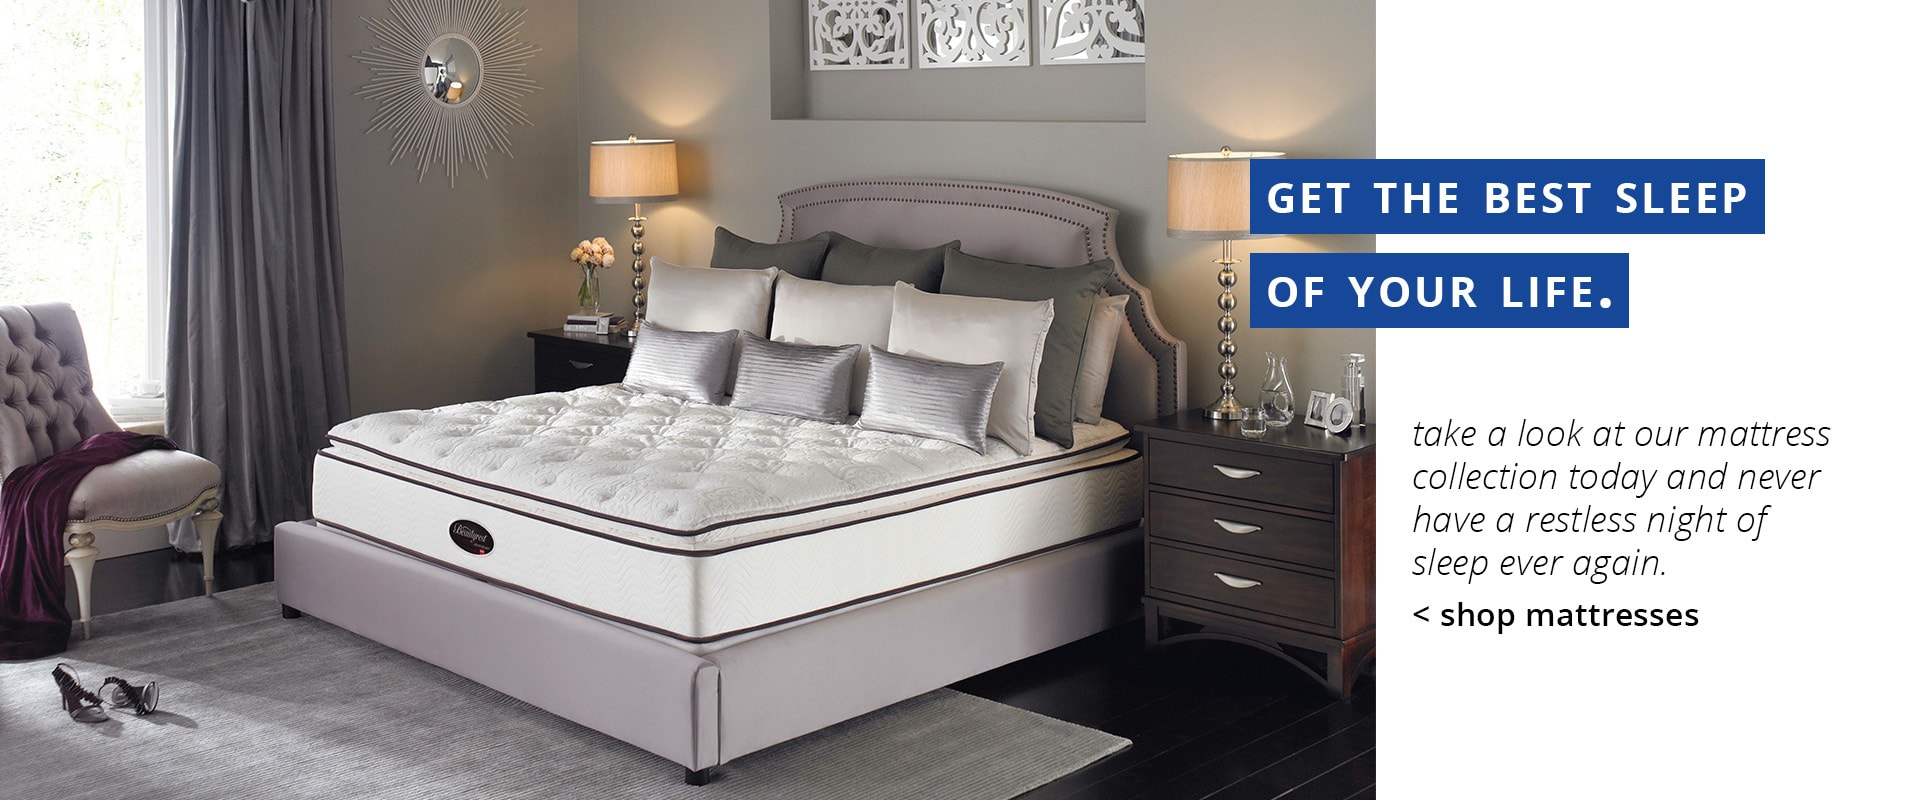 Get the best sleep of your life. Shop Mattresses